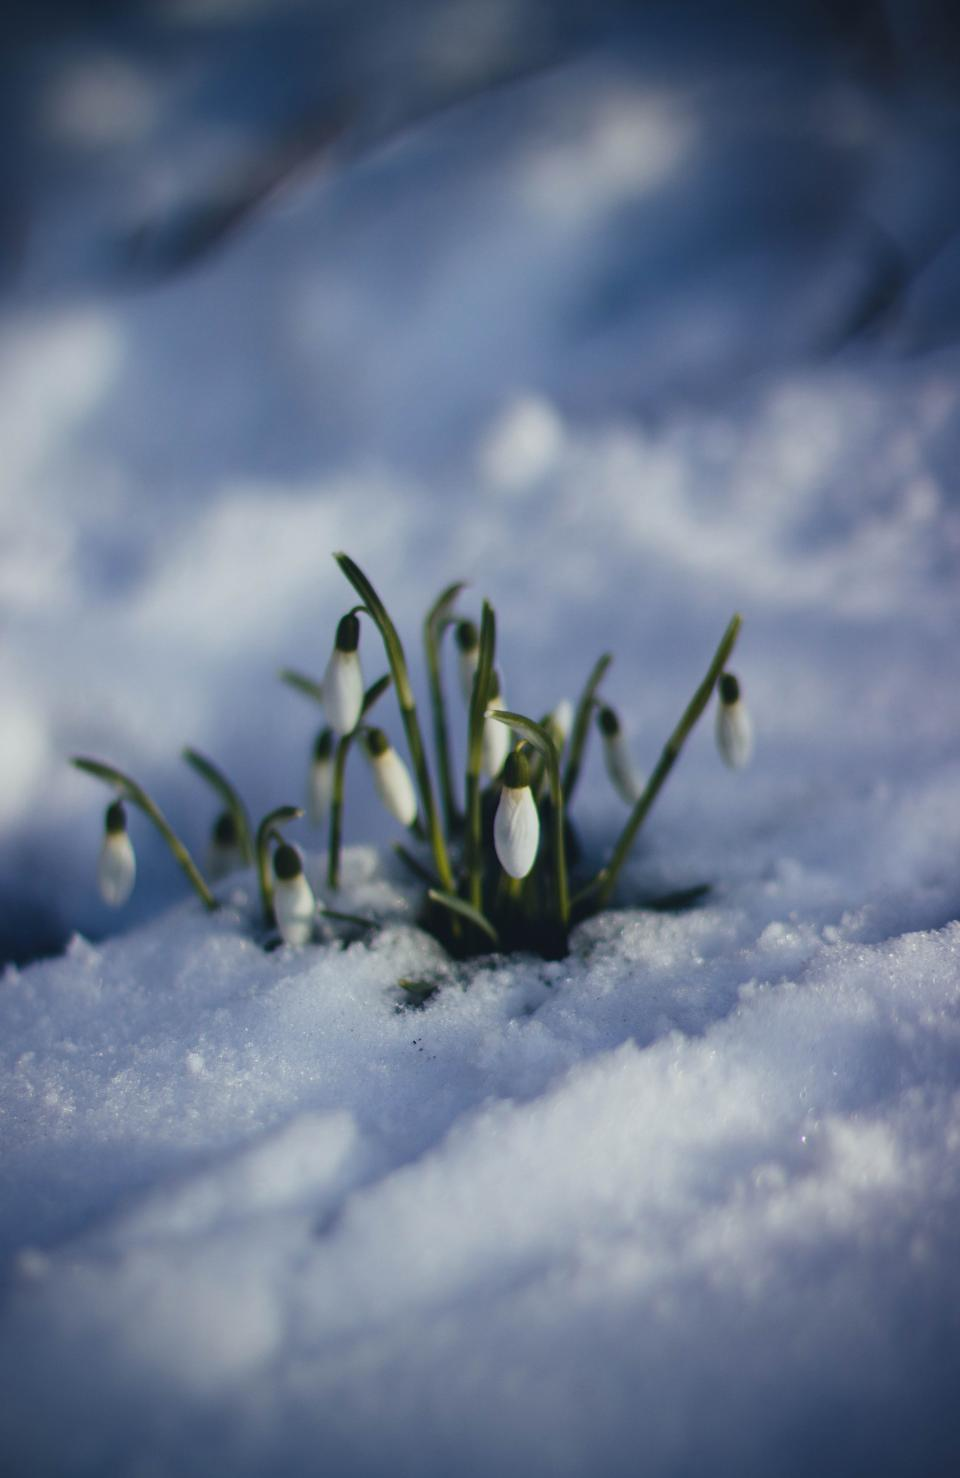 flower green leaf plant nature outdoor snow winter